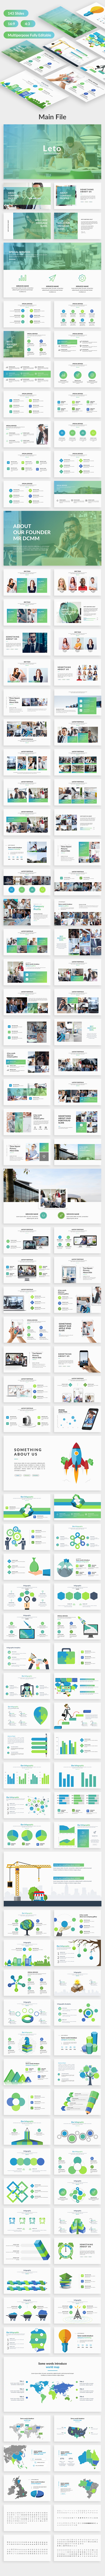 Leto Business Powerpoint Template - Business PowerPoint Templates